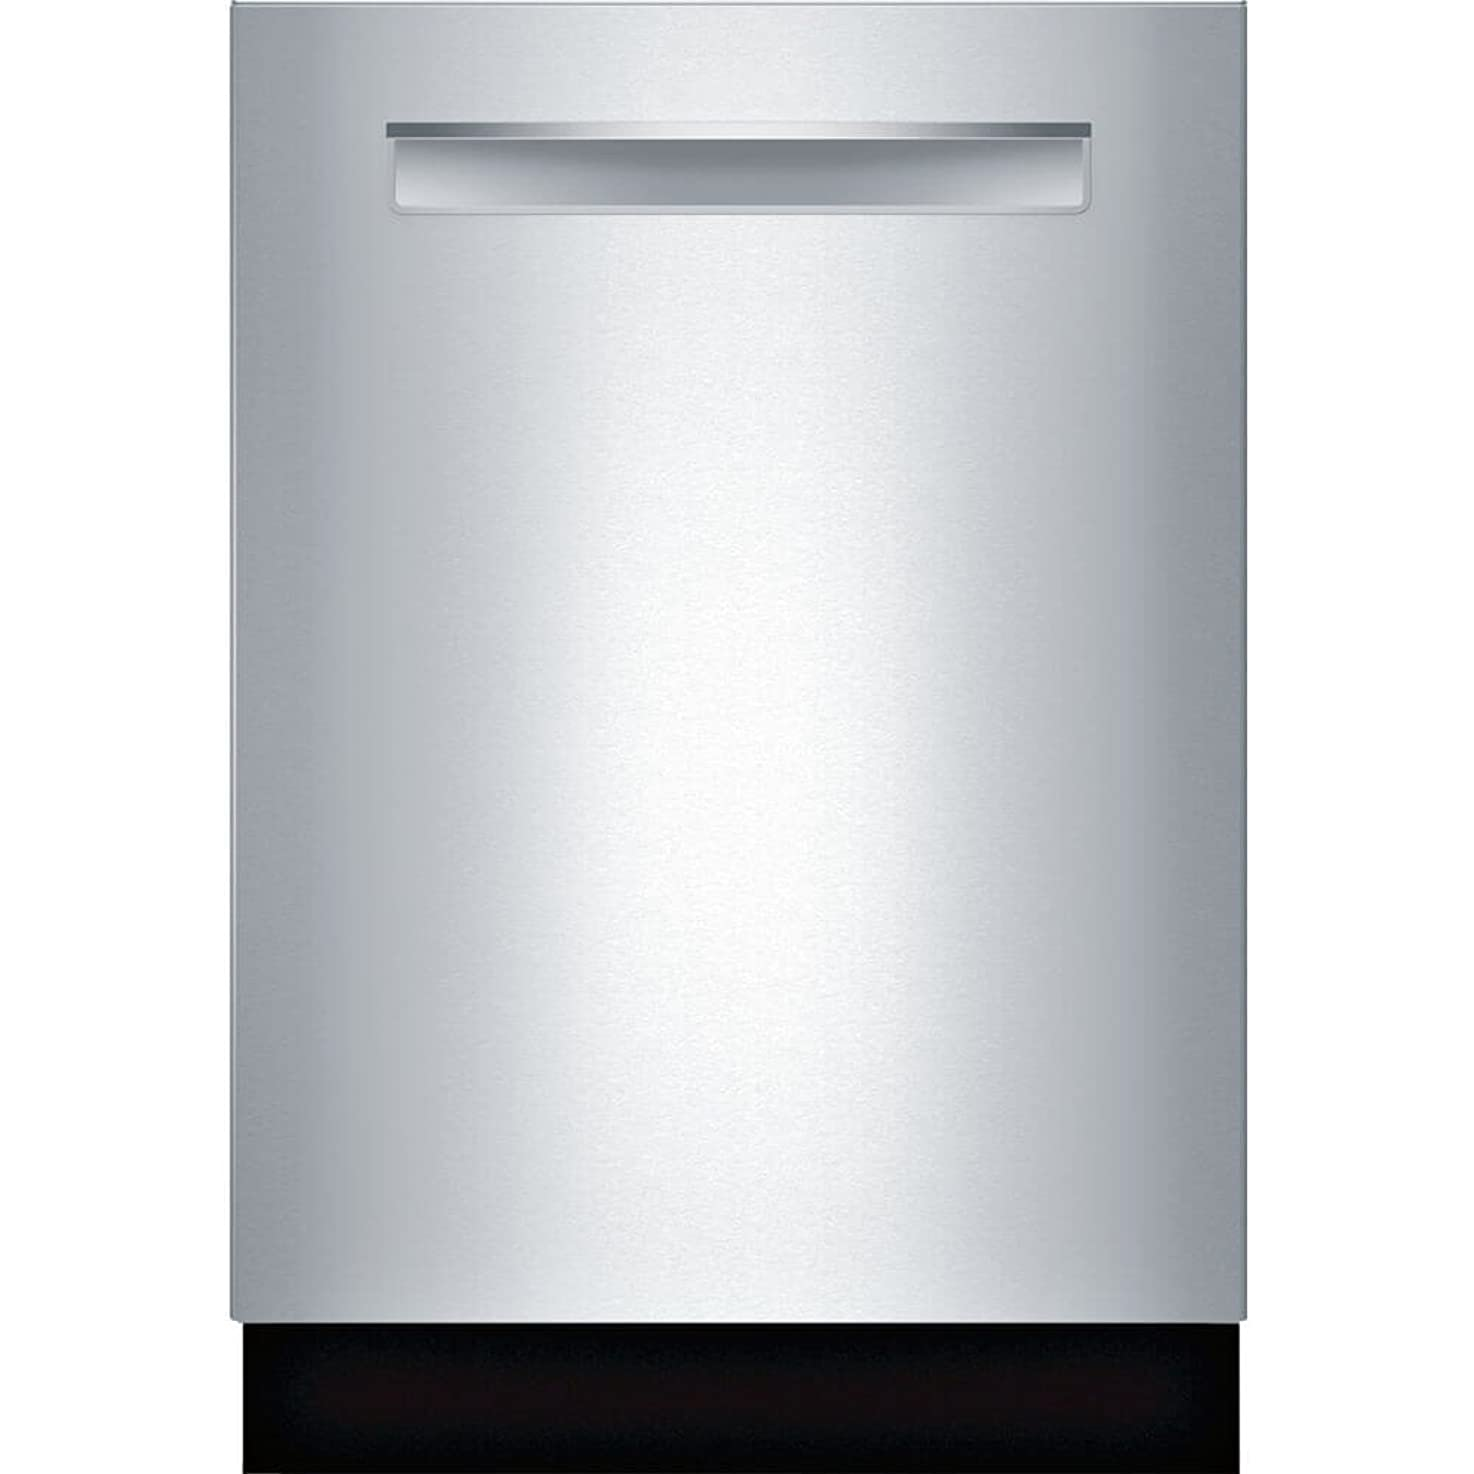 Bosch SHP865WD5N 500 Series Built In Fully Integrated Dishwasher with 5 Wash Cycles, in Stainless Steel zixzxpfprniby4